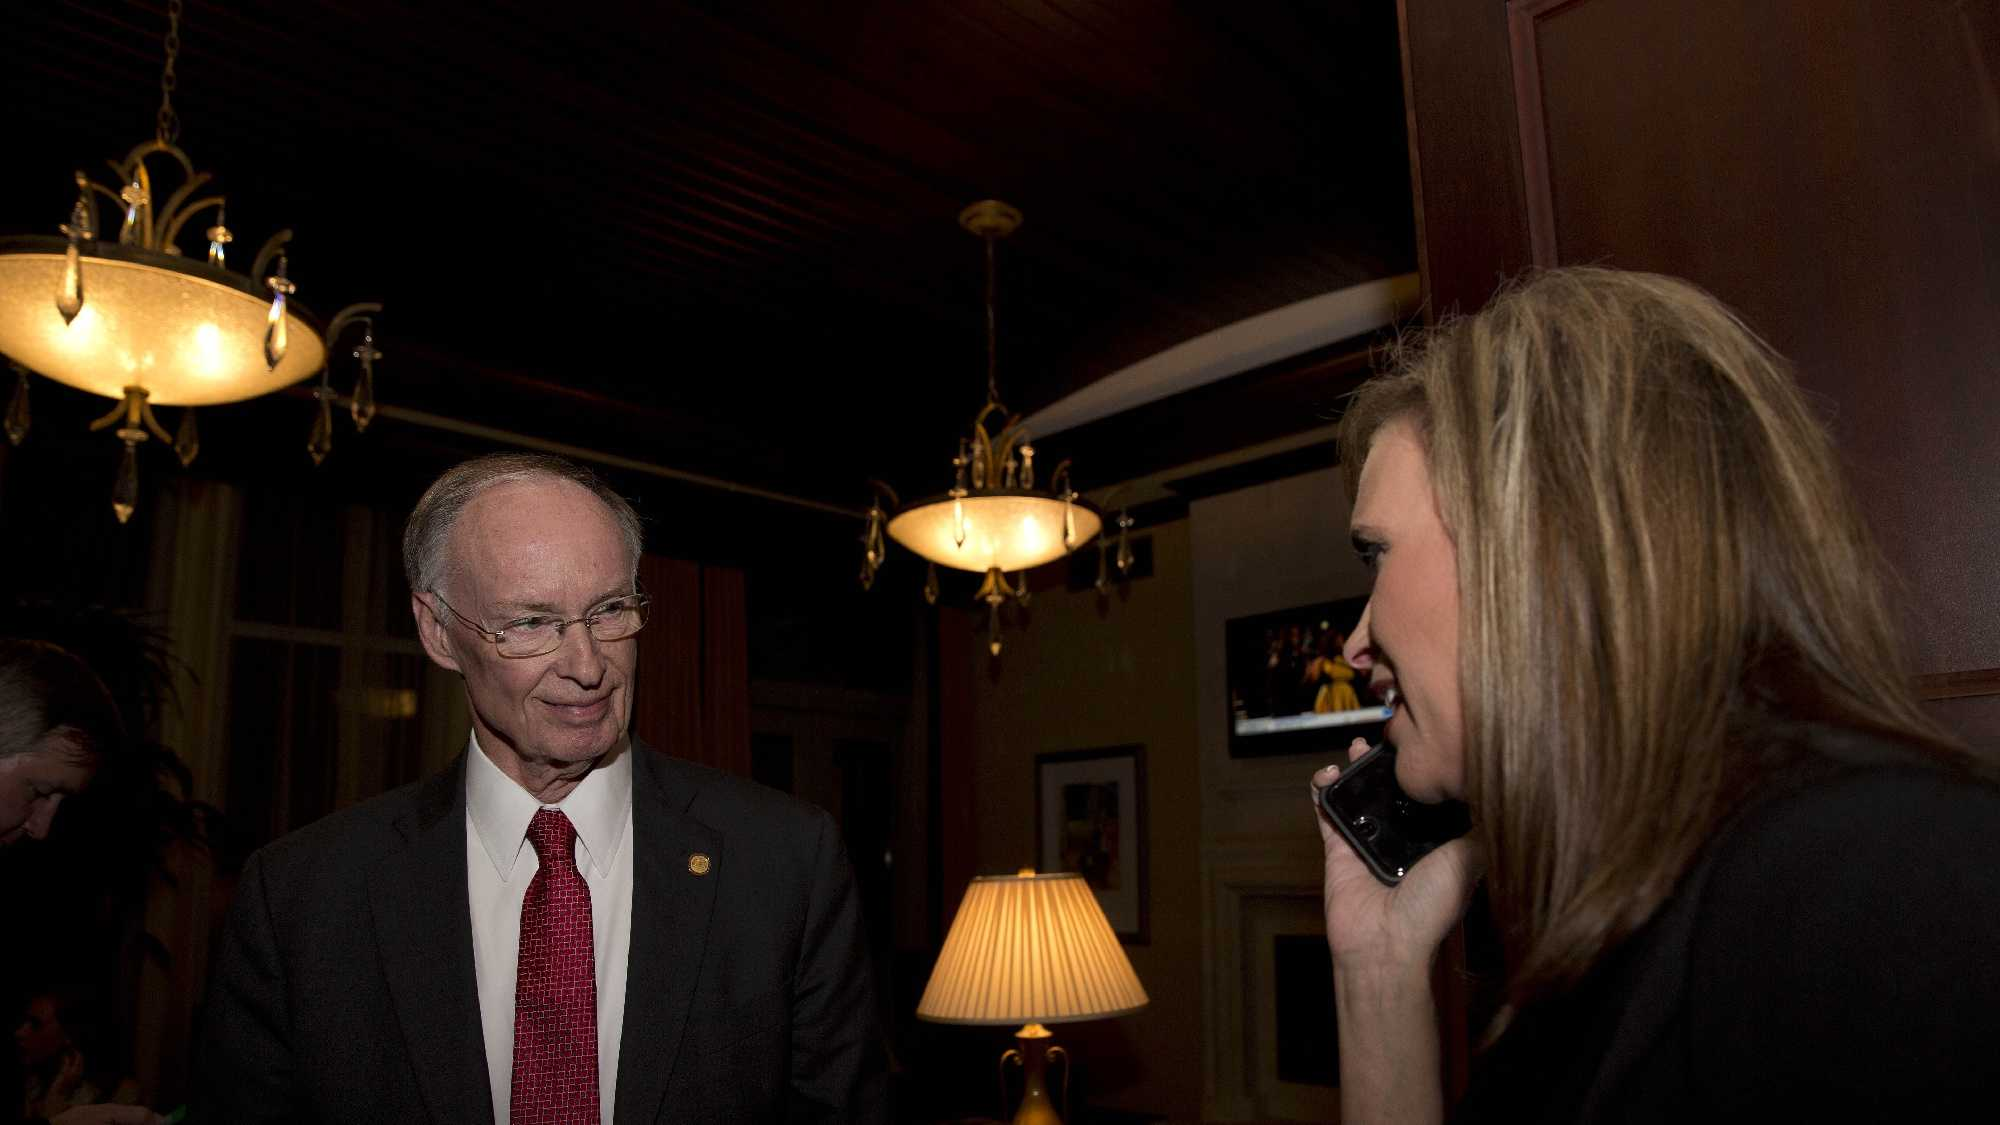 Republican Gov. Robert Bentley takes the phone call from Rebekah Mason announcing his win for Alabama governor, Tuesday, Nov. 4, 2014, in Montgomery, Ala. Bentley defeated his opponent Democrat Parker Griffith.